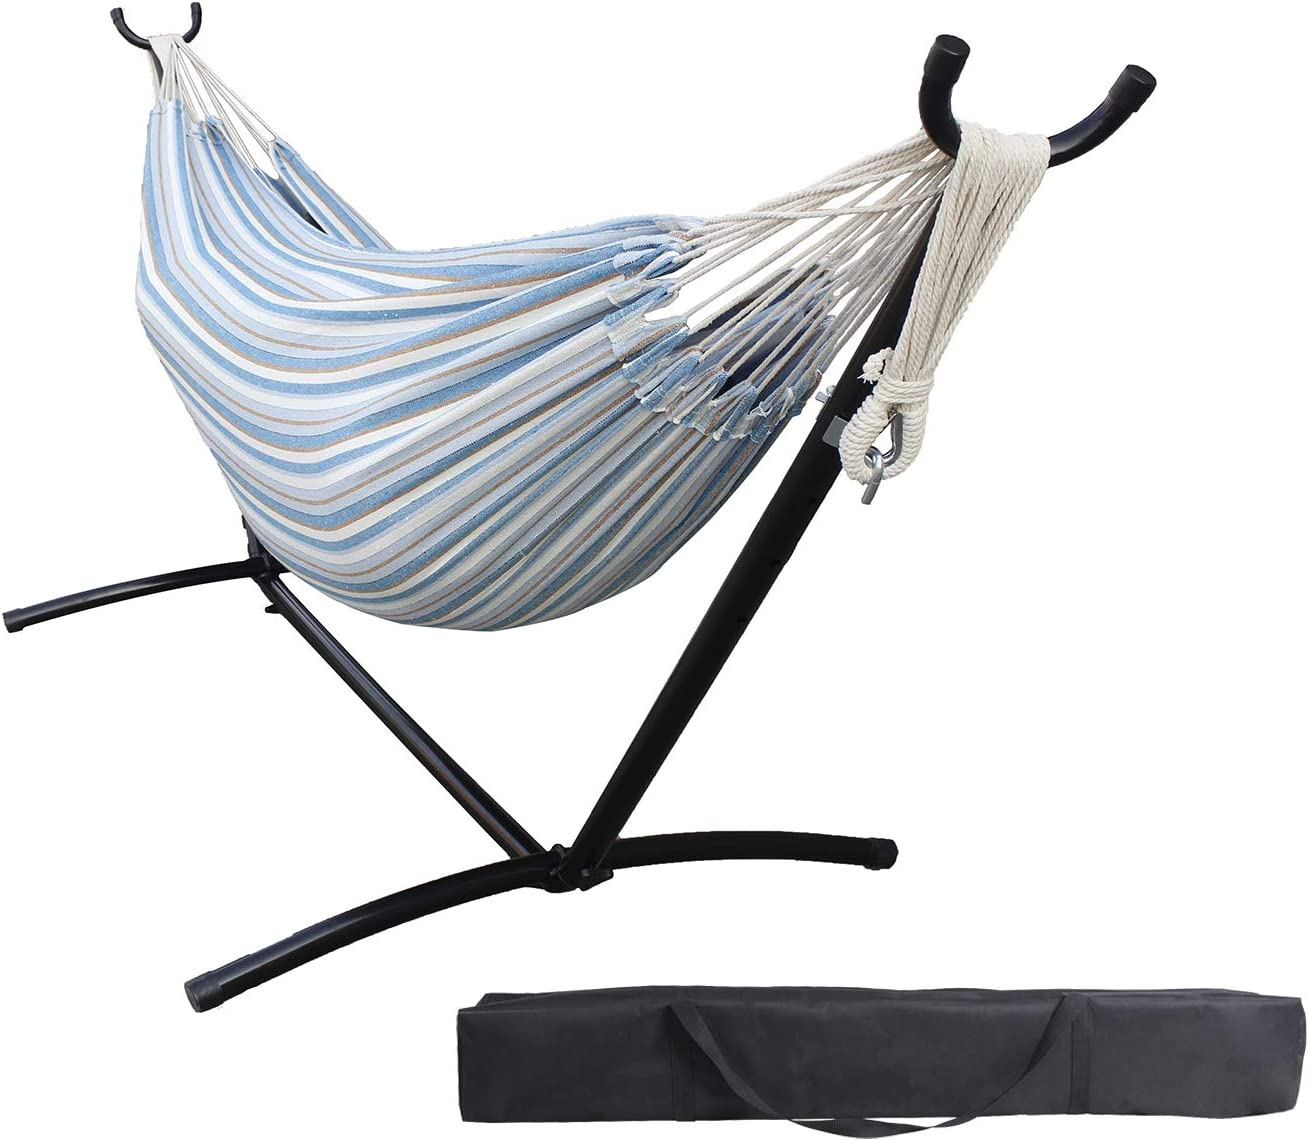 Duck Covers Weekend 82 Inch Mesh One-Person Travel Hammock, Blue Shadow